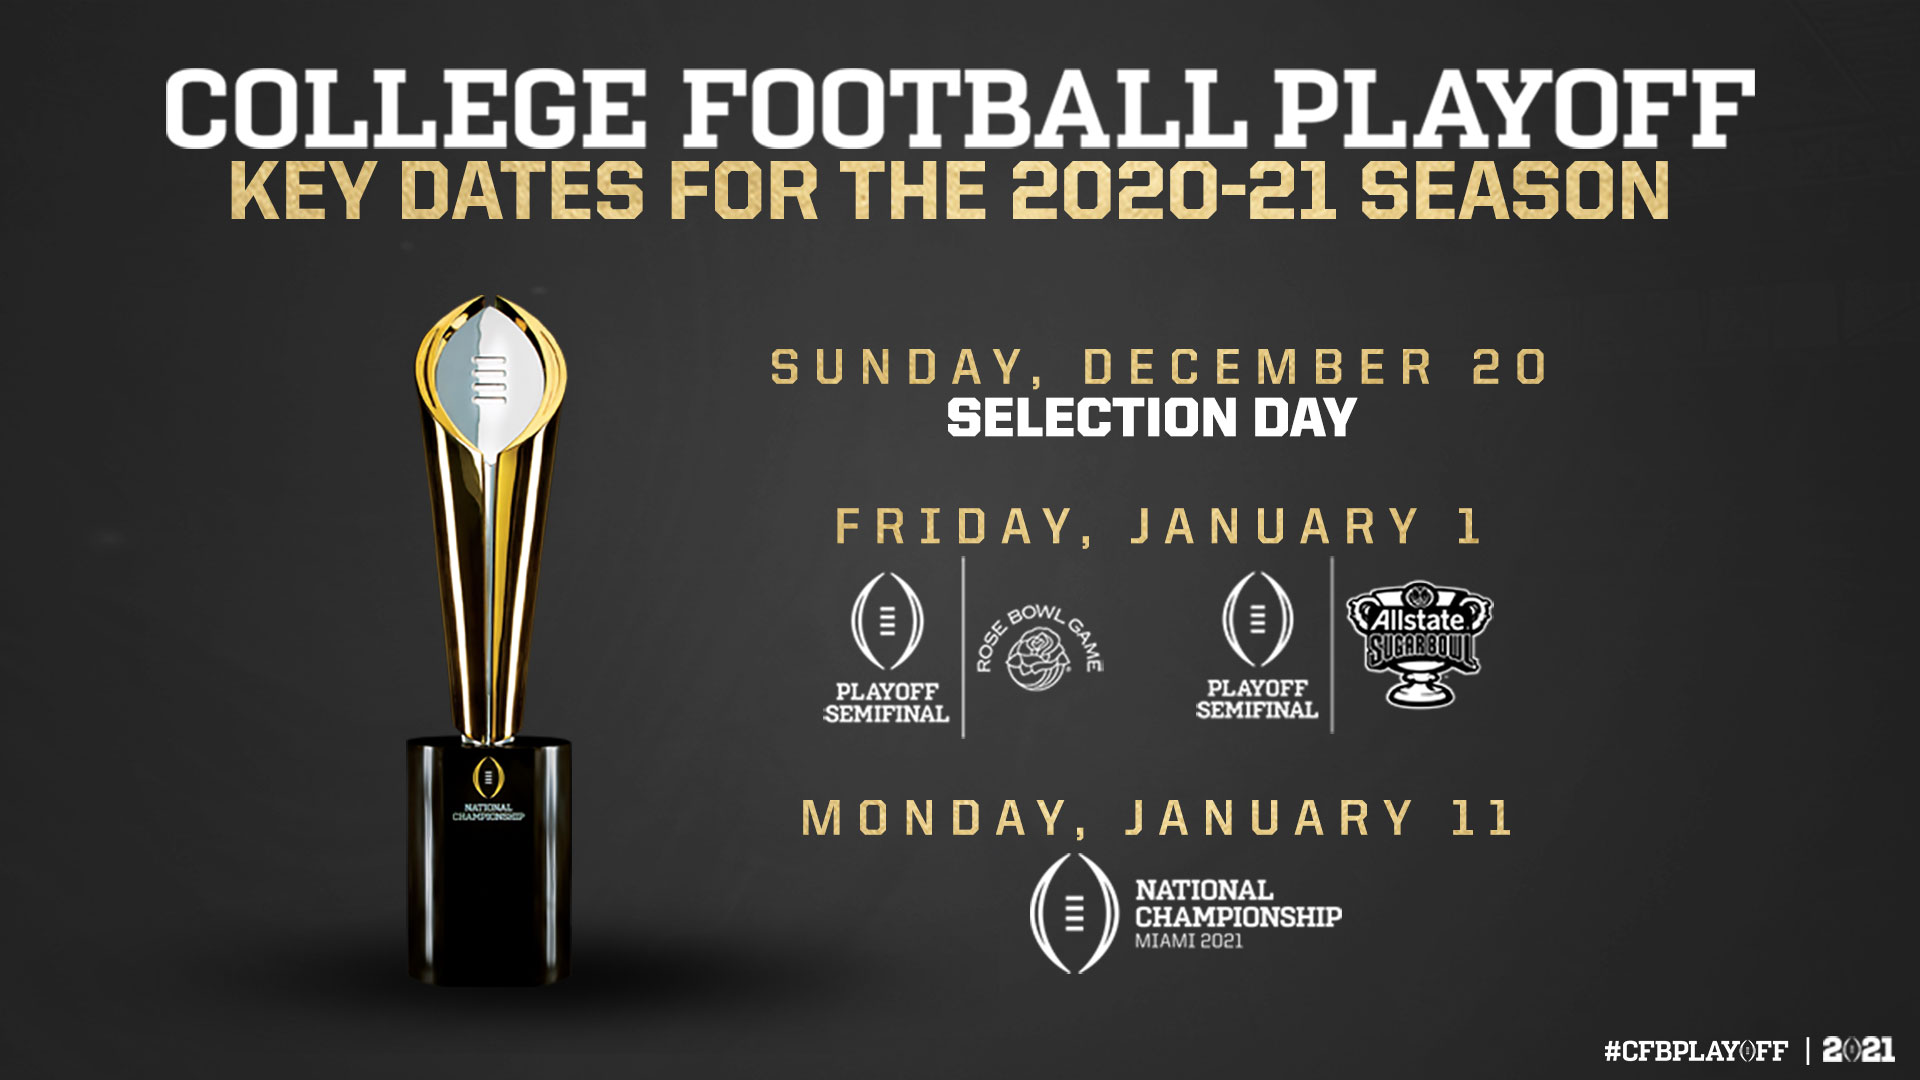 College Football Playoff Announces Schedule Changes for the 2020-21 Season  - College Football Playoff